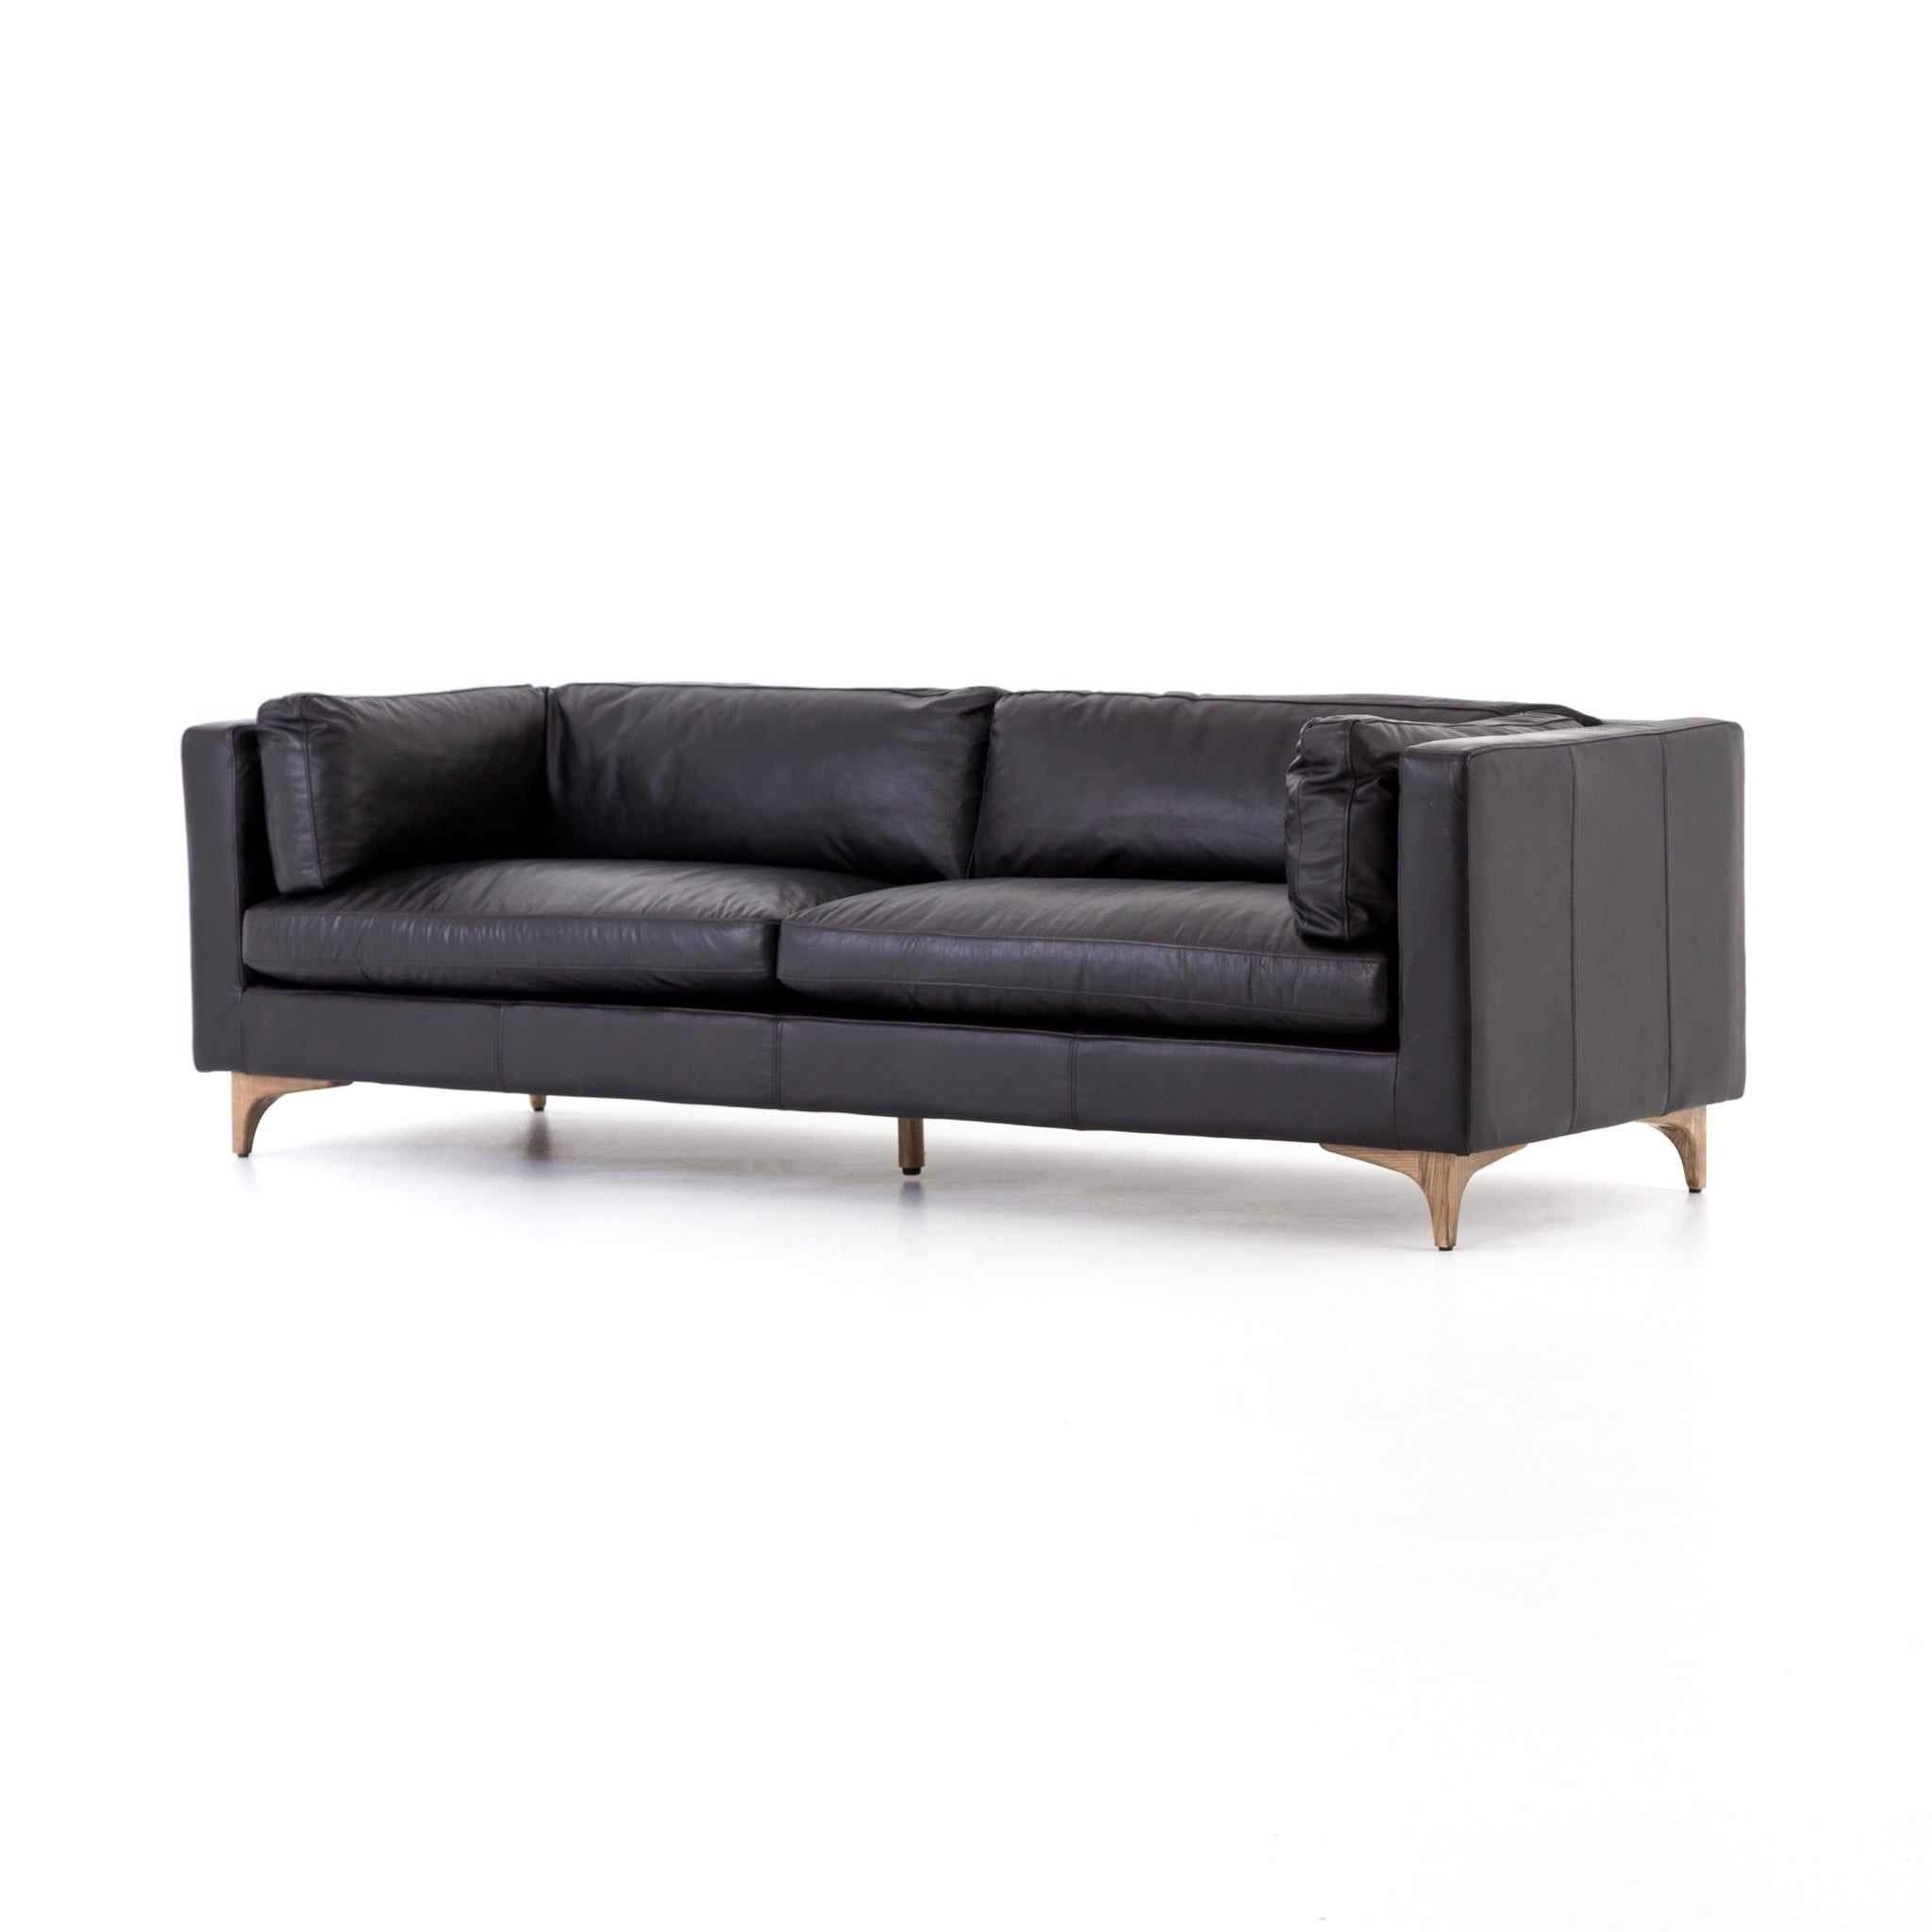 Mid Century Modern Sofa Top Grain Leather Black - Furniture on Main